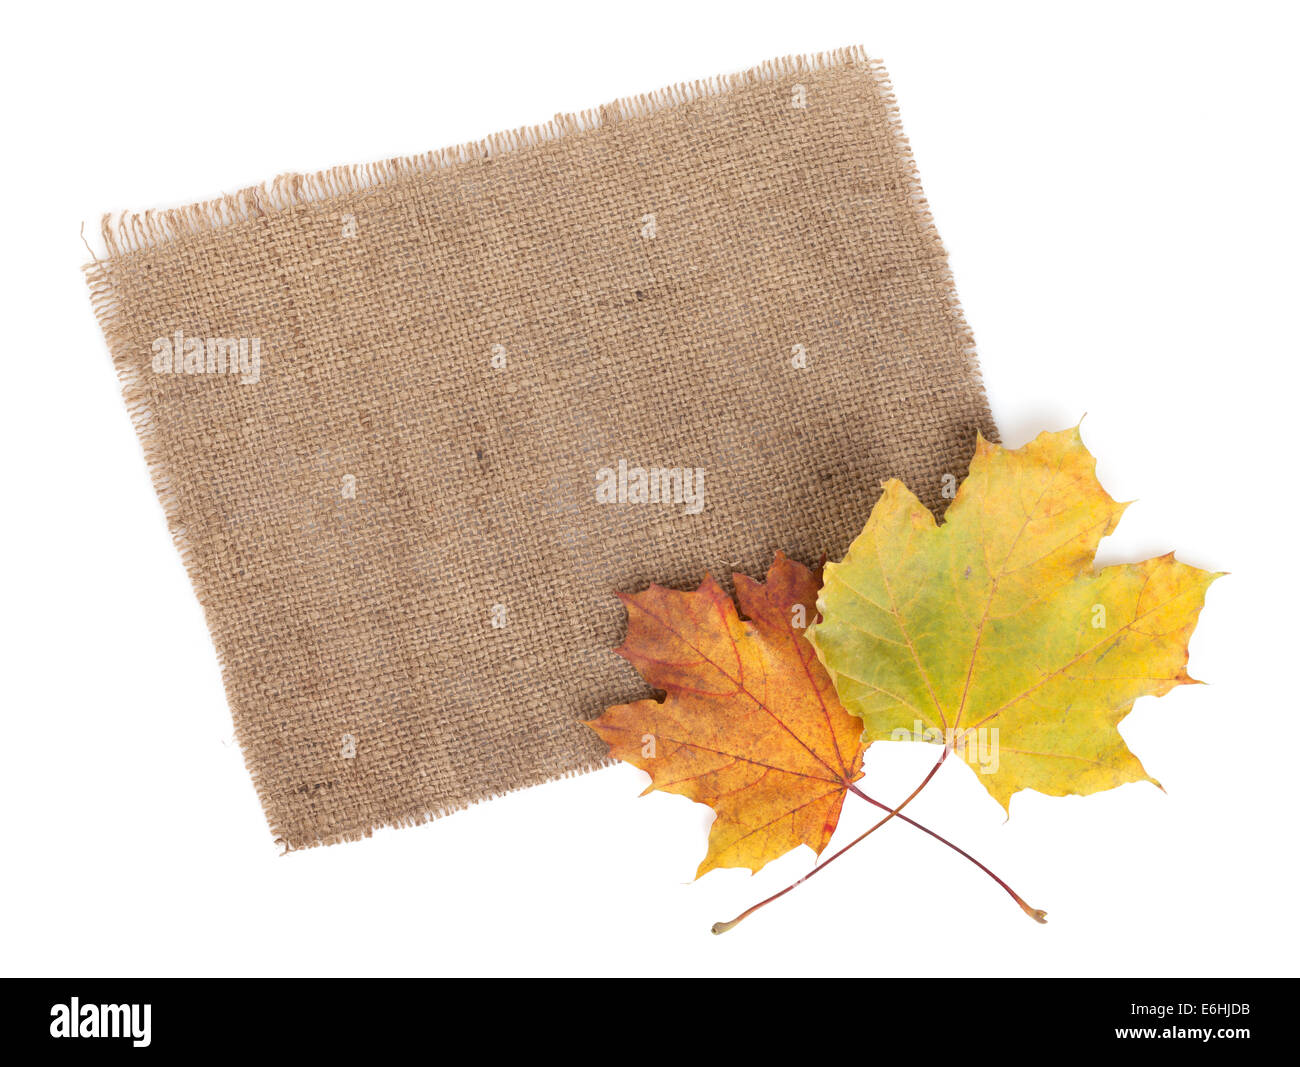 Scrap of burlap and autumn maple leaves. Isolated on white background - Stock Image